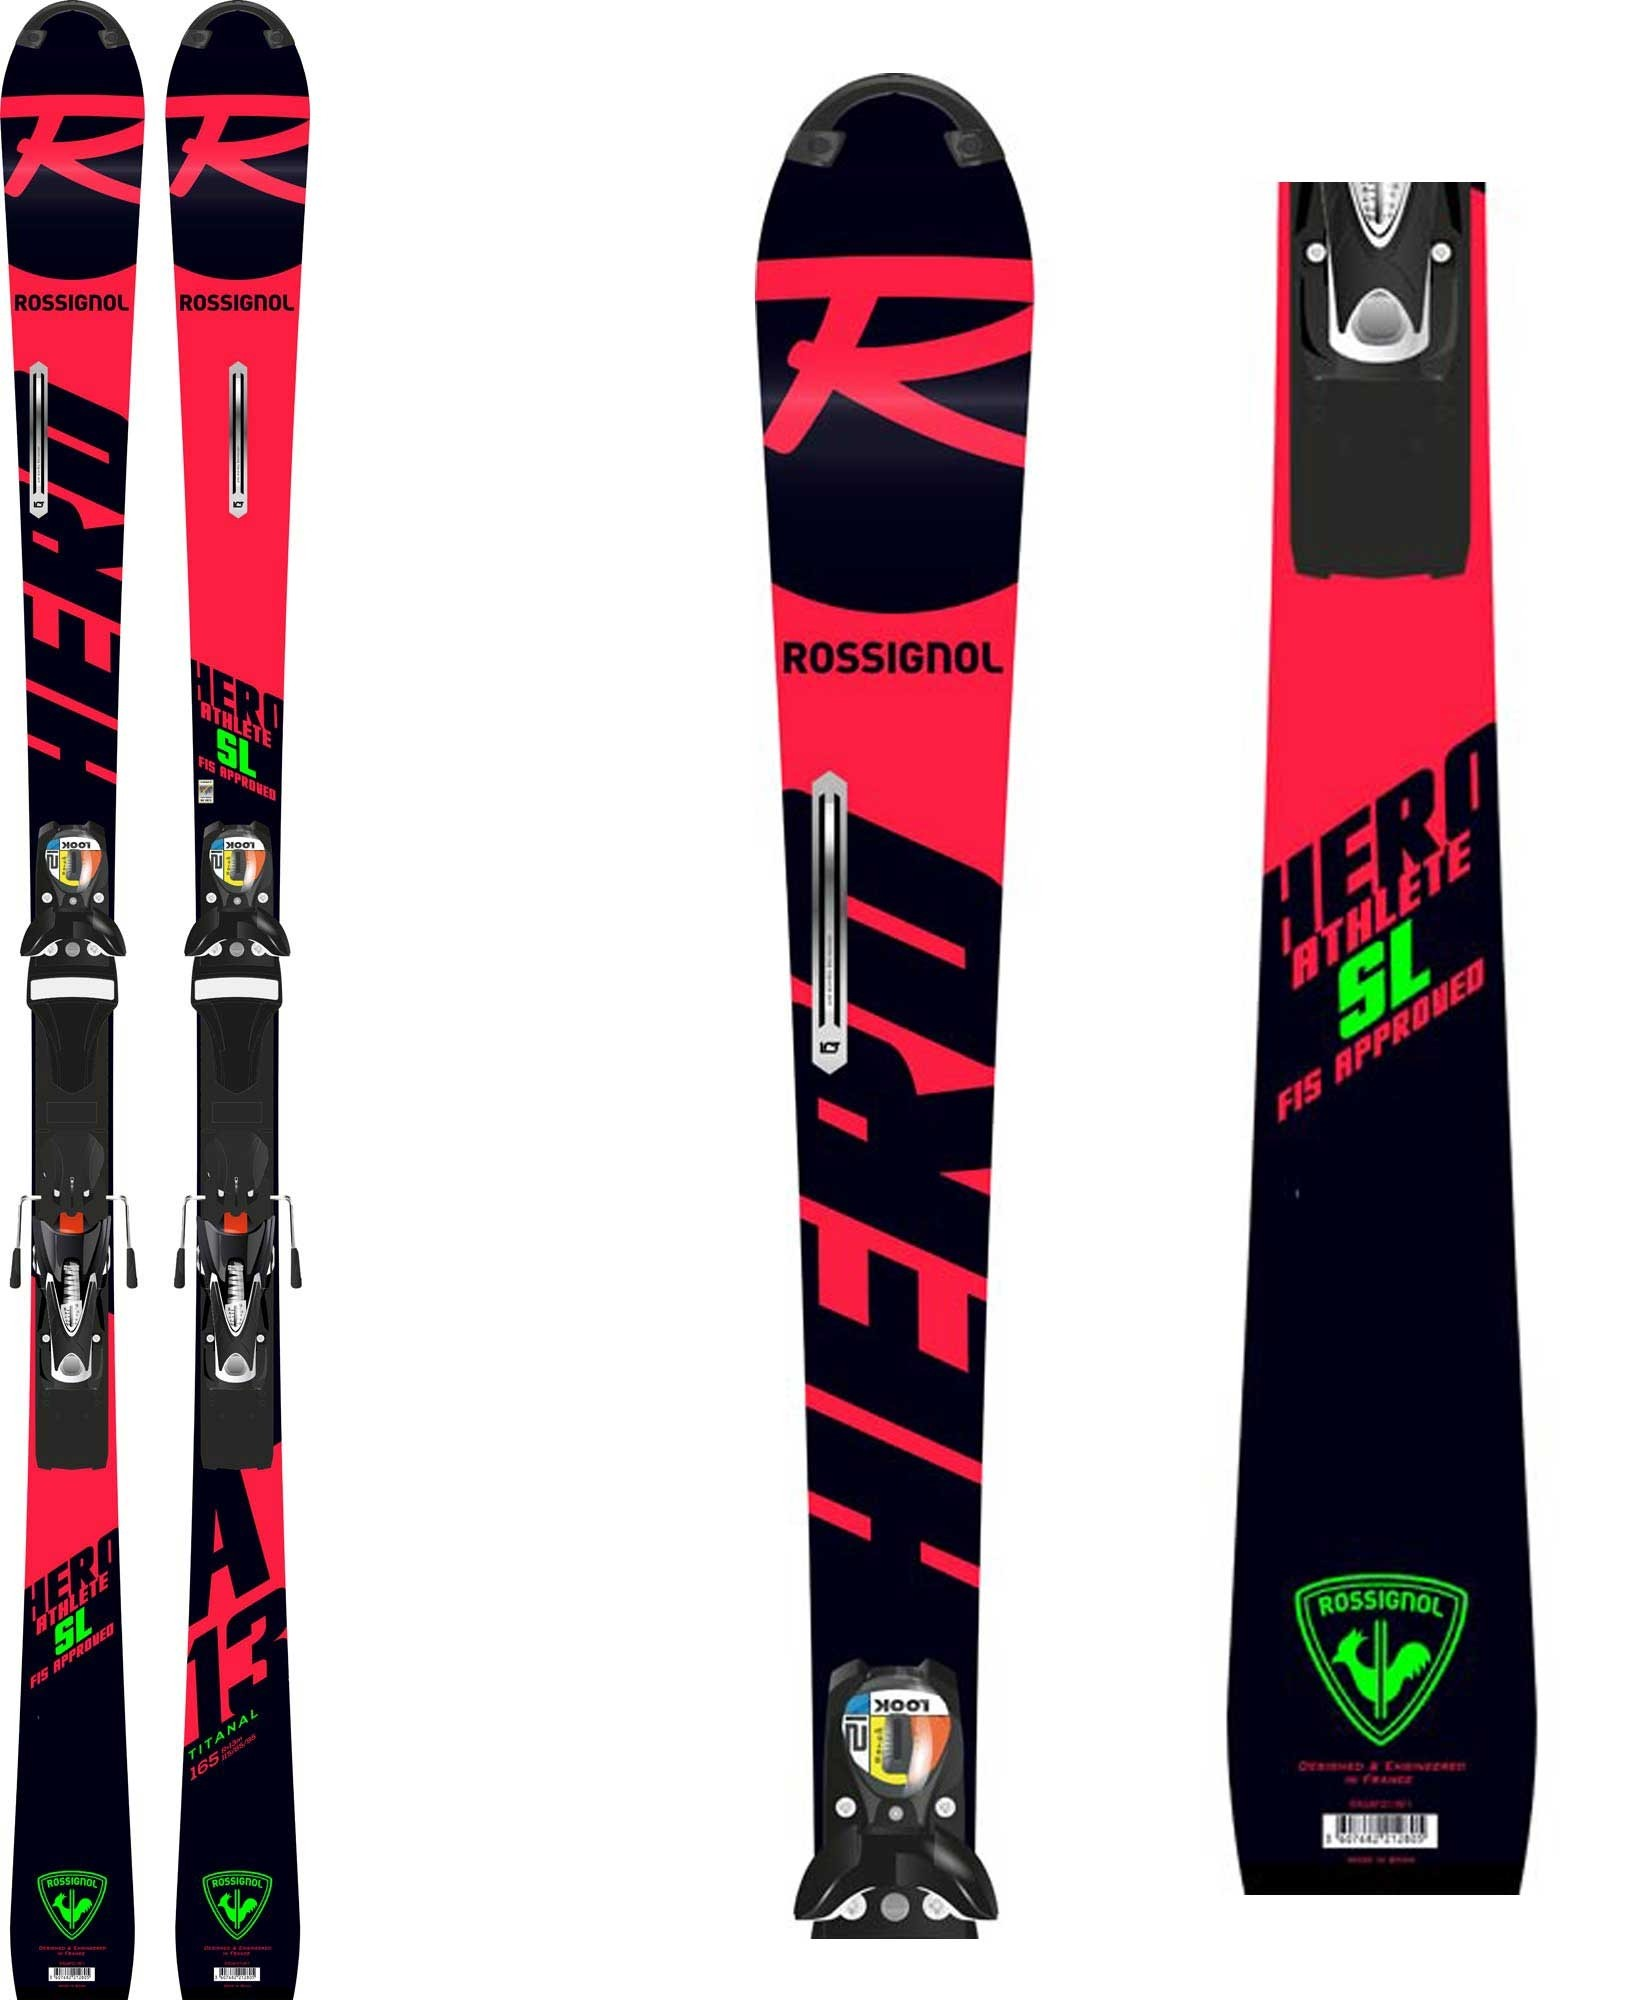 Rossignol hero athlete fis sl r22 165